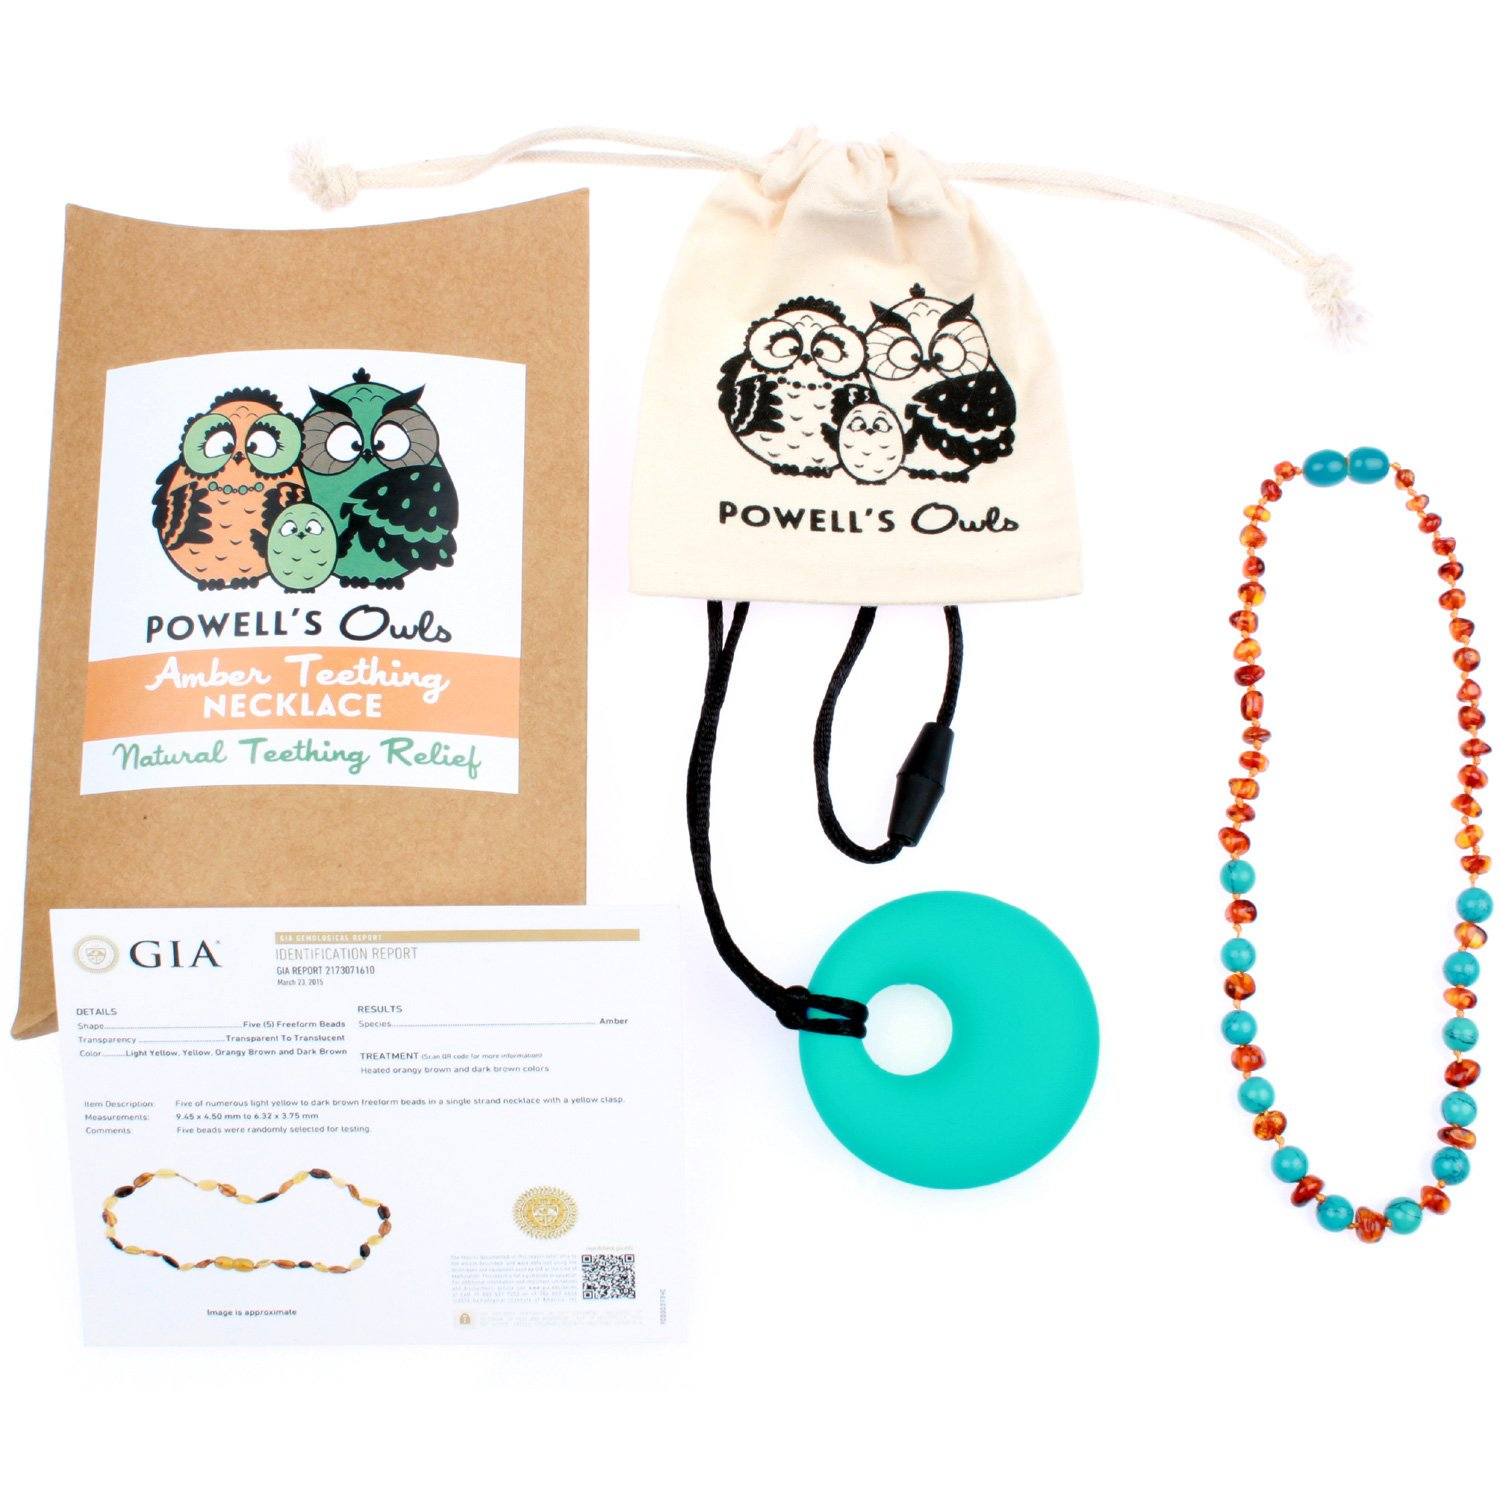 Baltic Amber Teething Necklace Gift Set + FREE Silicone Teething Pendant ($15 Value) Handcrafted, 100% USA Lab-Tested Authentic Amber - Teething Pain Relief (Turquoise/Cognac Mix - 12.5 Inches)